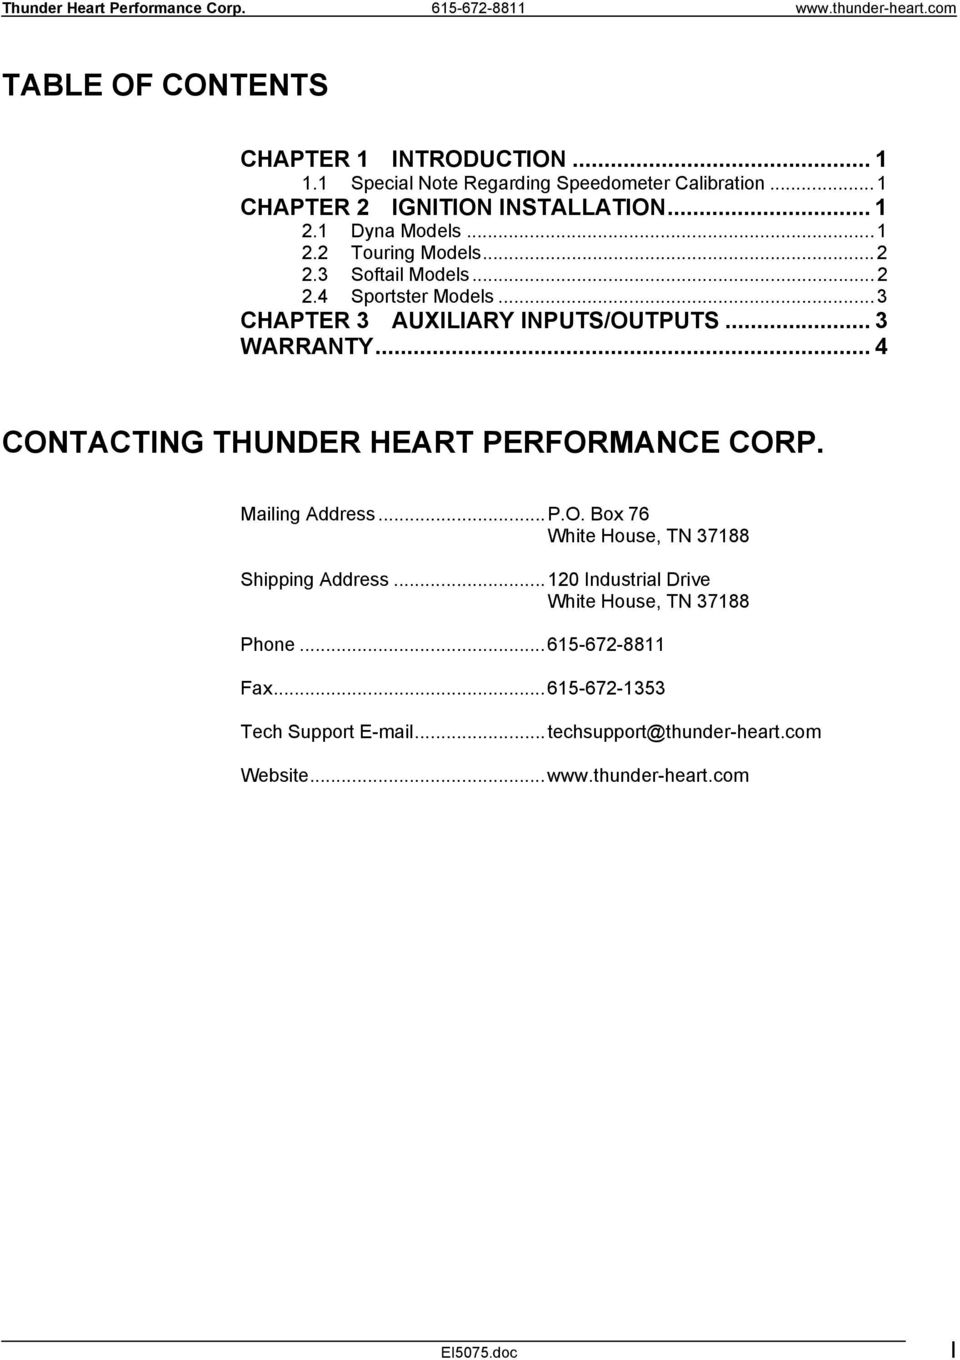 .. 4 CONTACTING THUNDER HEART PERFORMANCE CORP. Mailing Address...P.O. Box 76 White House, TN 37188 Shipping Address.